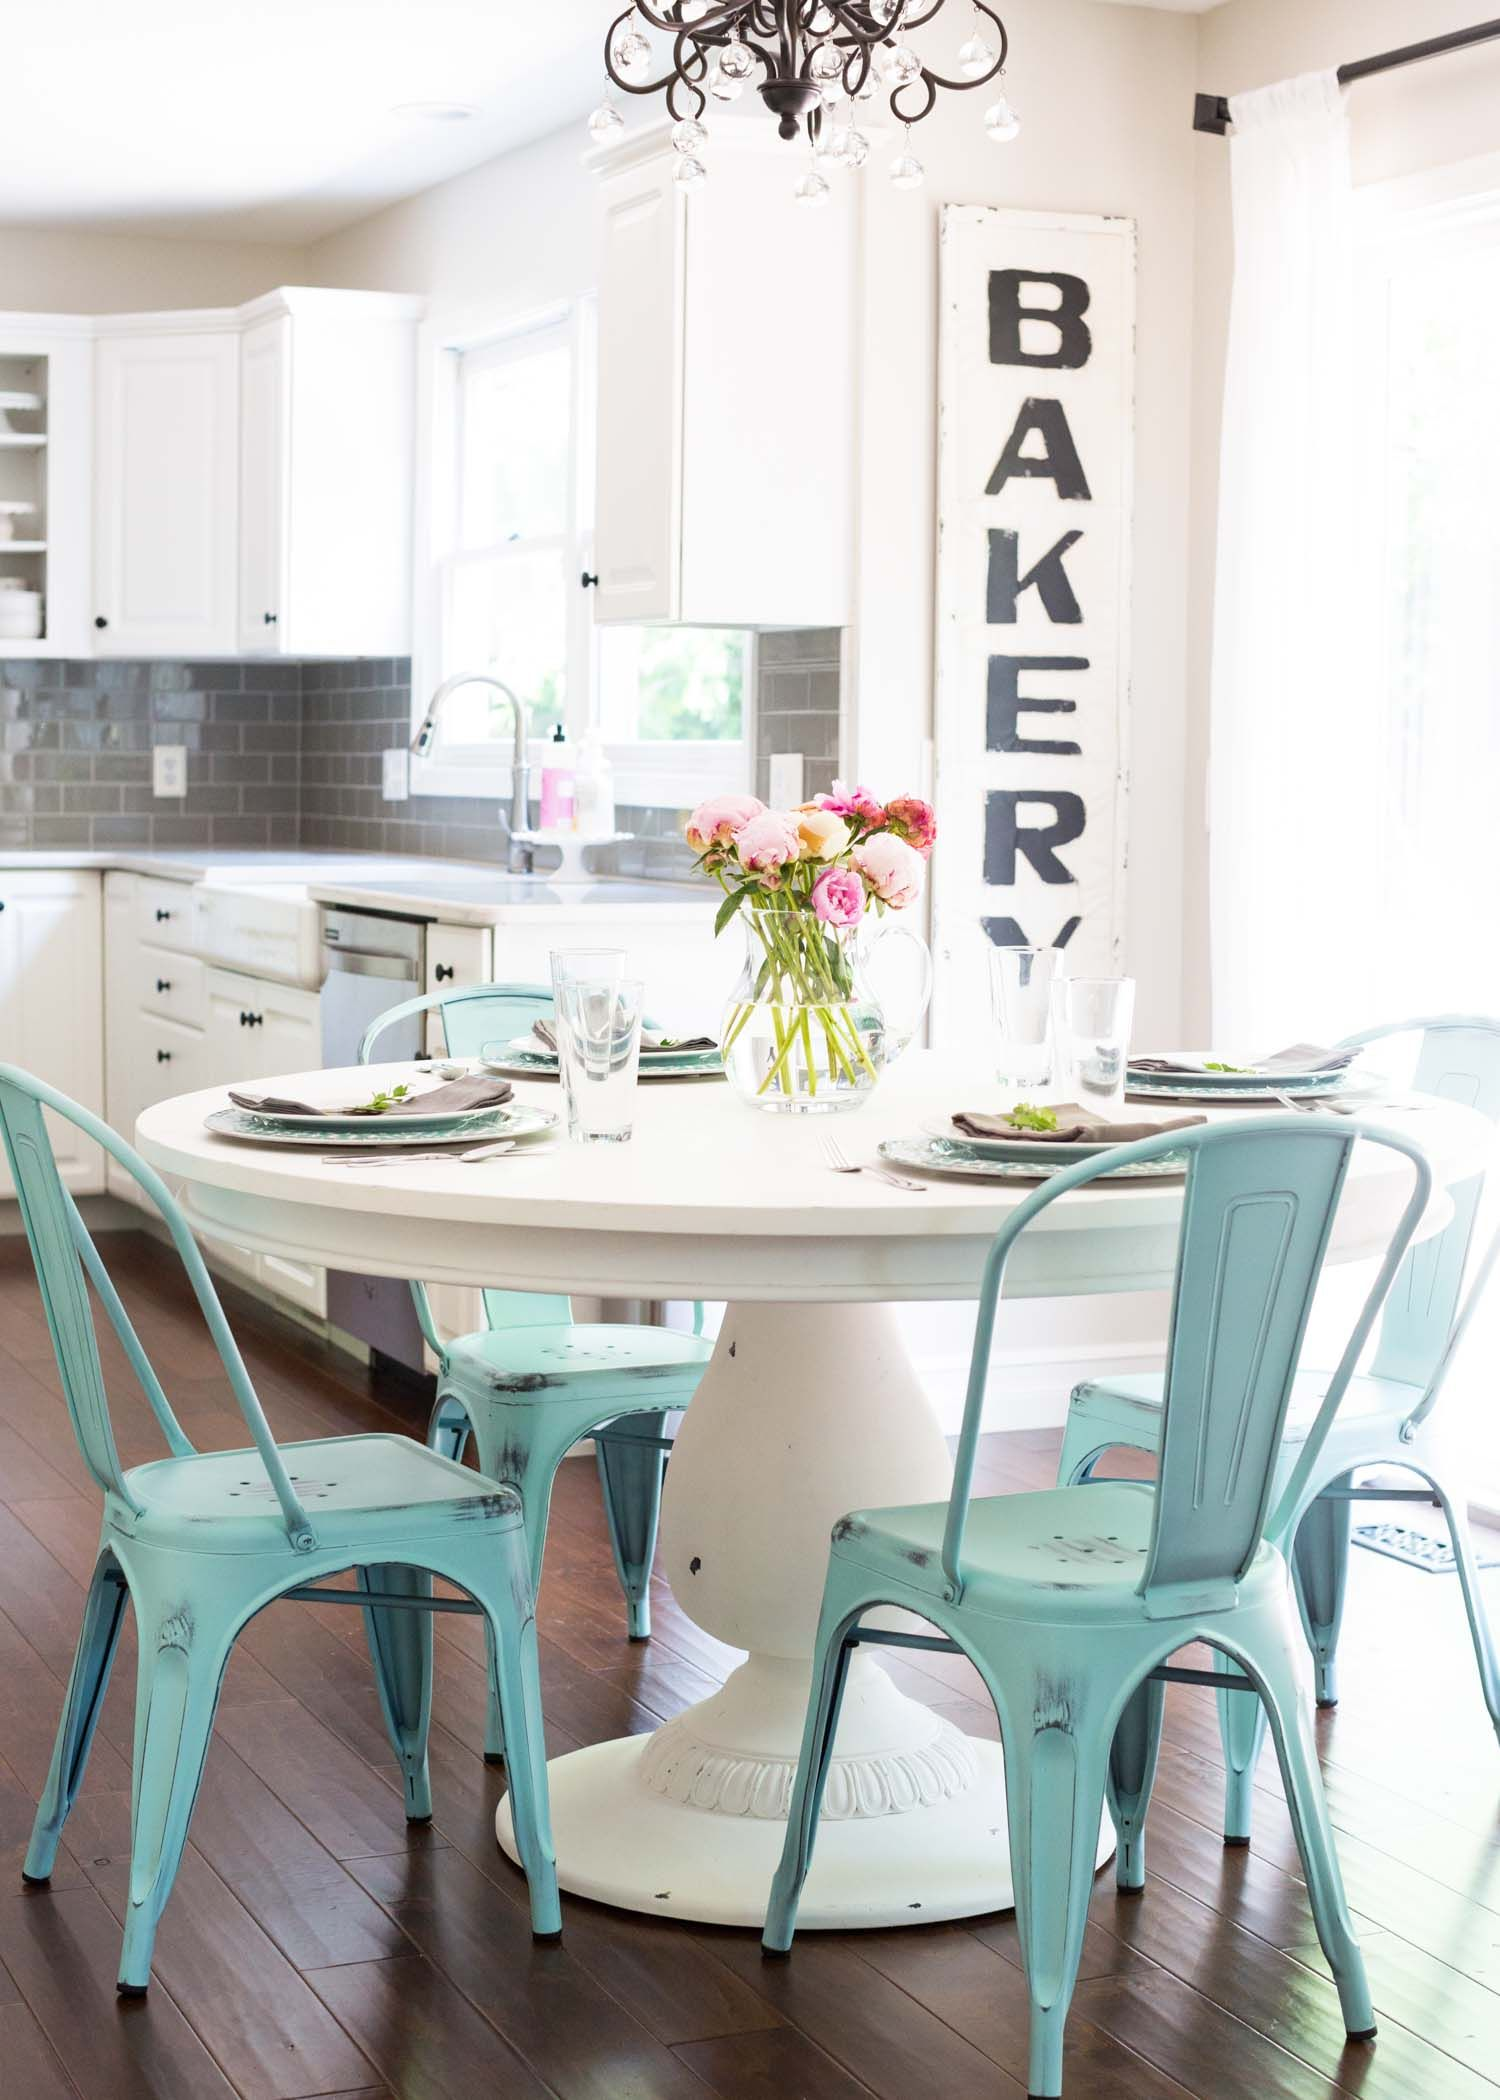 Dekotipps Esszimmer Diy Chalk Paint Table Breakfast Nook Pinterest Esszimmer